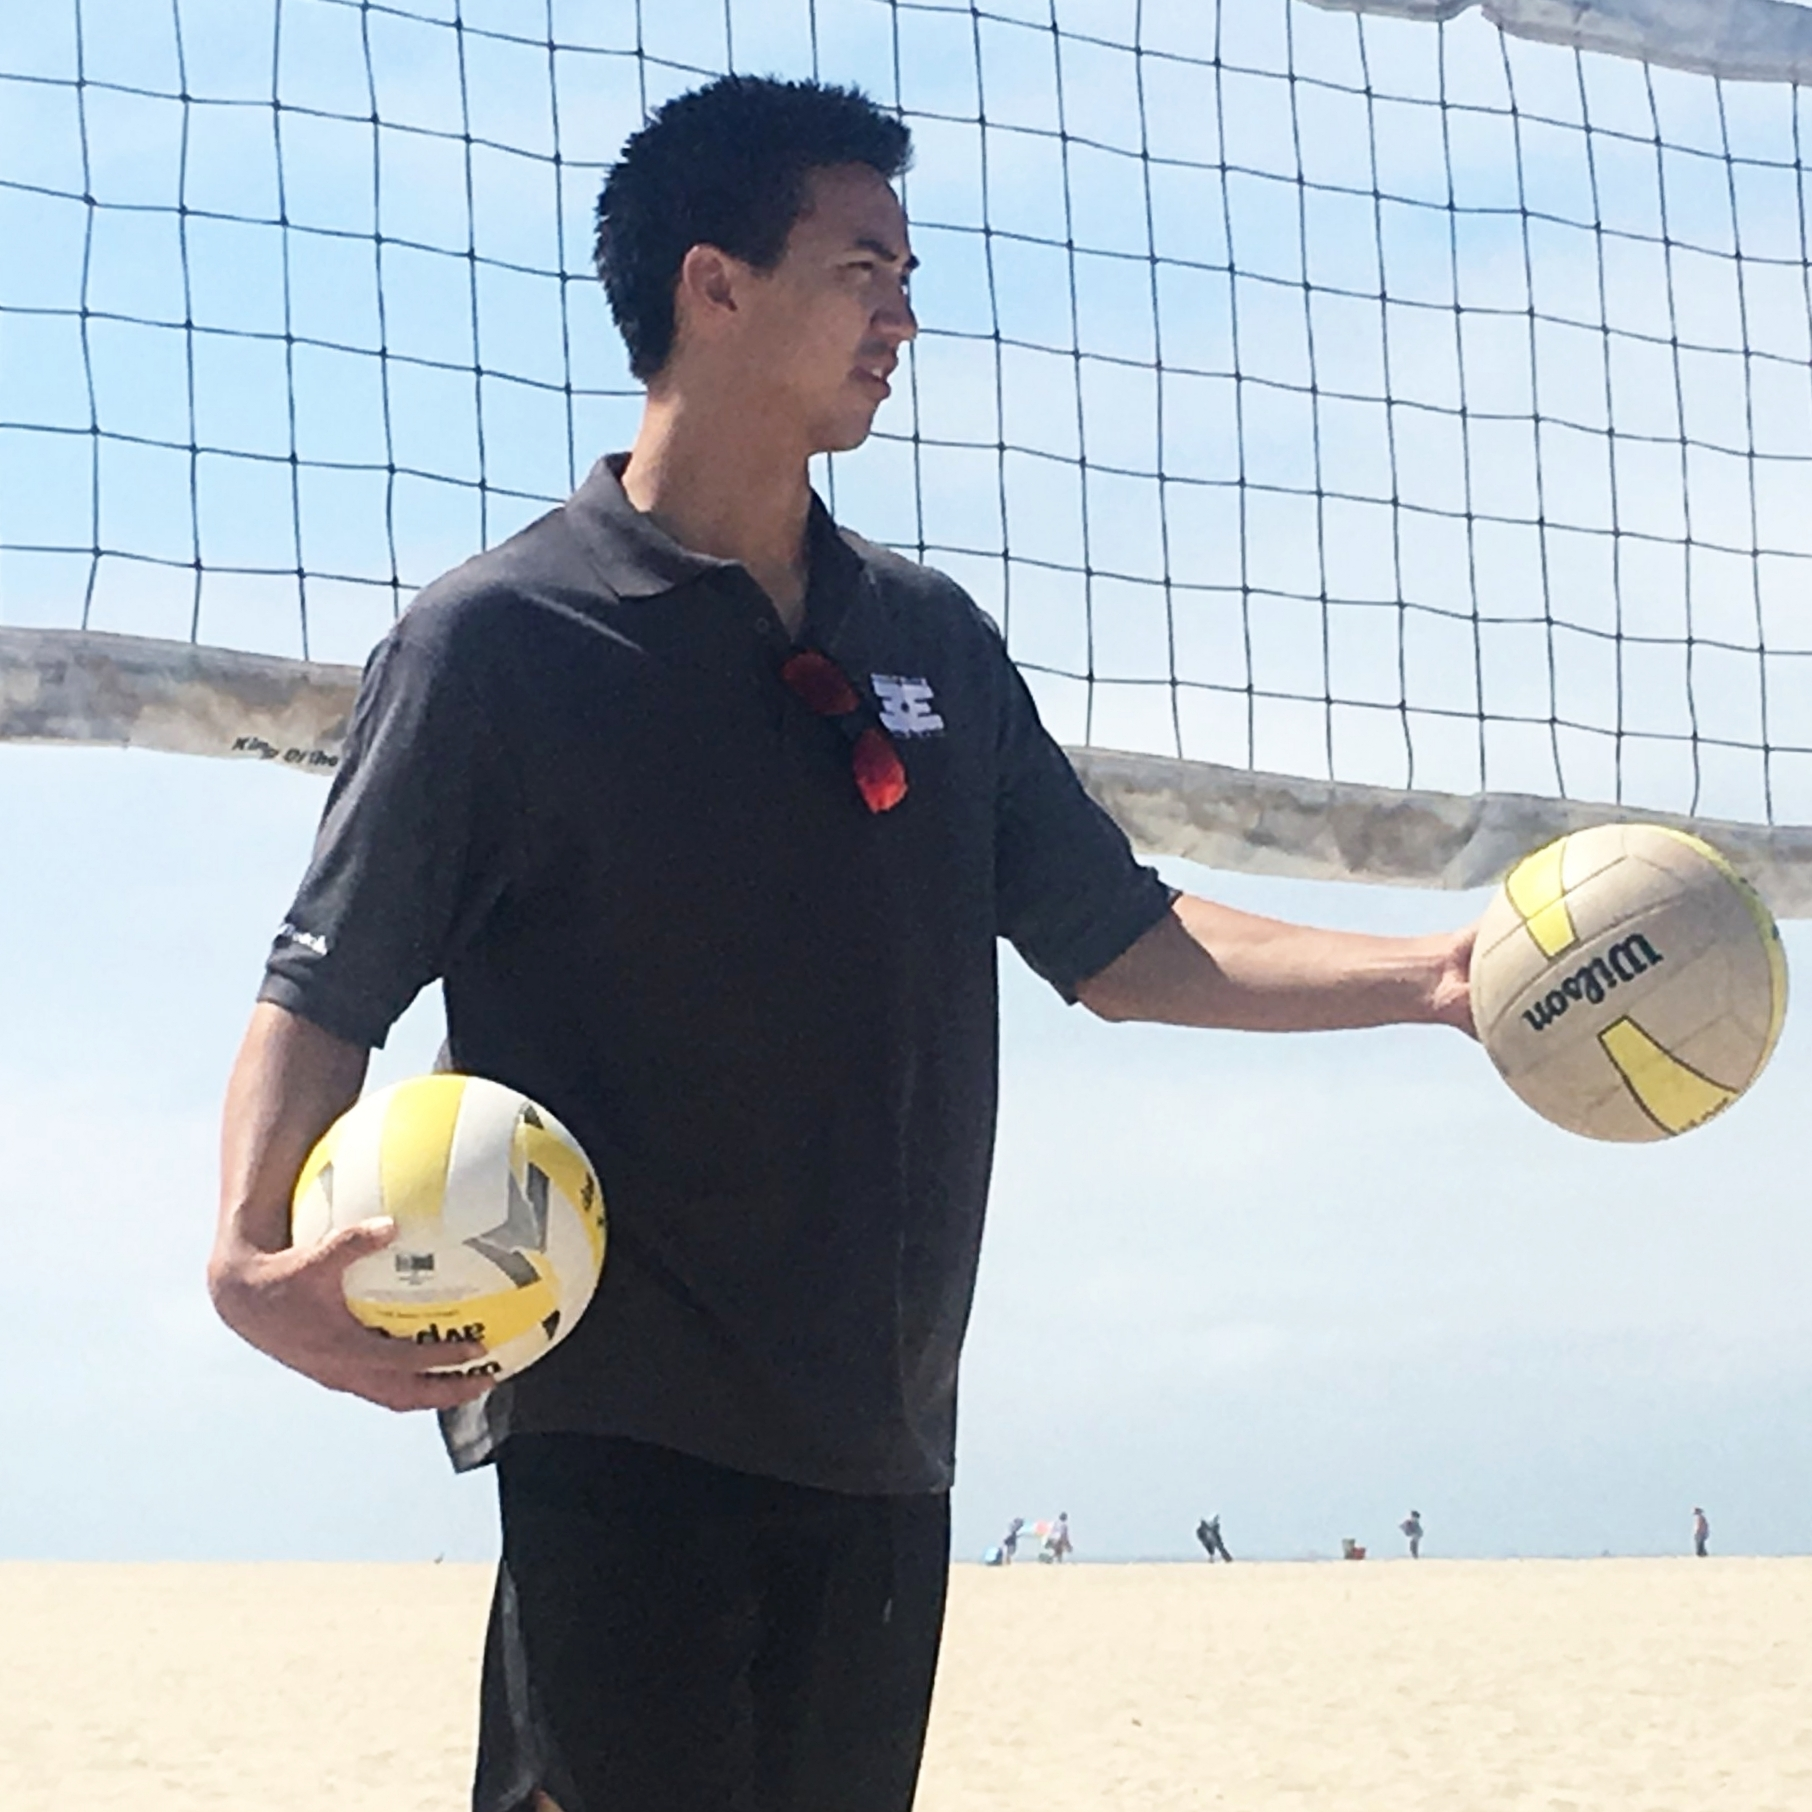 AVLIN TROUNG - *June 2017-Current: Assistant Coach, Estancia High School Girls Varsity Volleyball Team*2017: Head Coach, Estancia High Schools Girls JV Volleyball Team*2017: Head Coach, Beach Elite Summer Camps*College: California State University, Long Beach